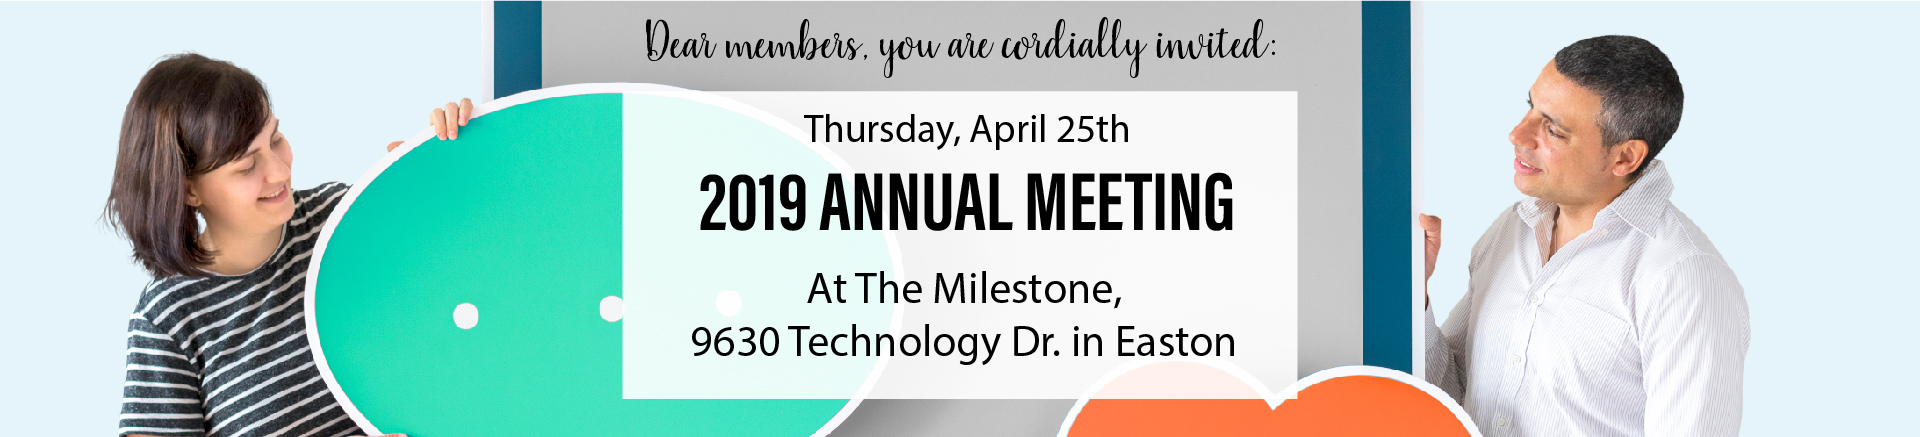 Come meet us at your Annual Meeting on April 25th at the Milestone in Easton, MD